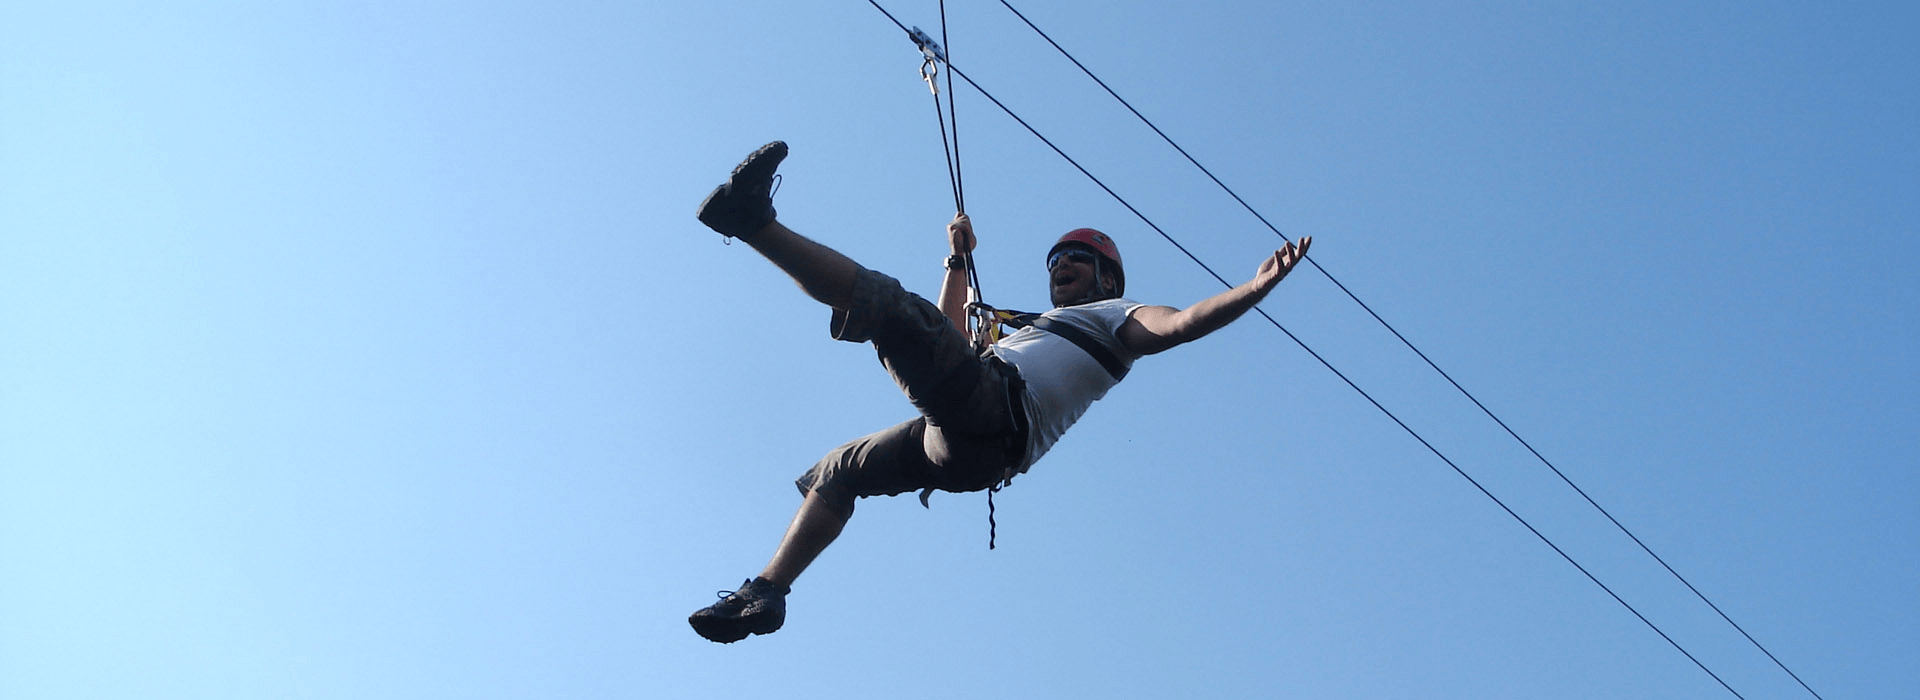 zip lining happy man